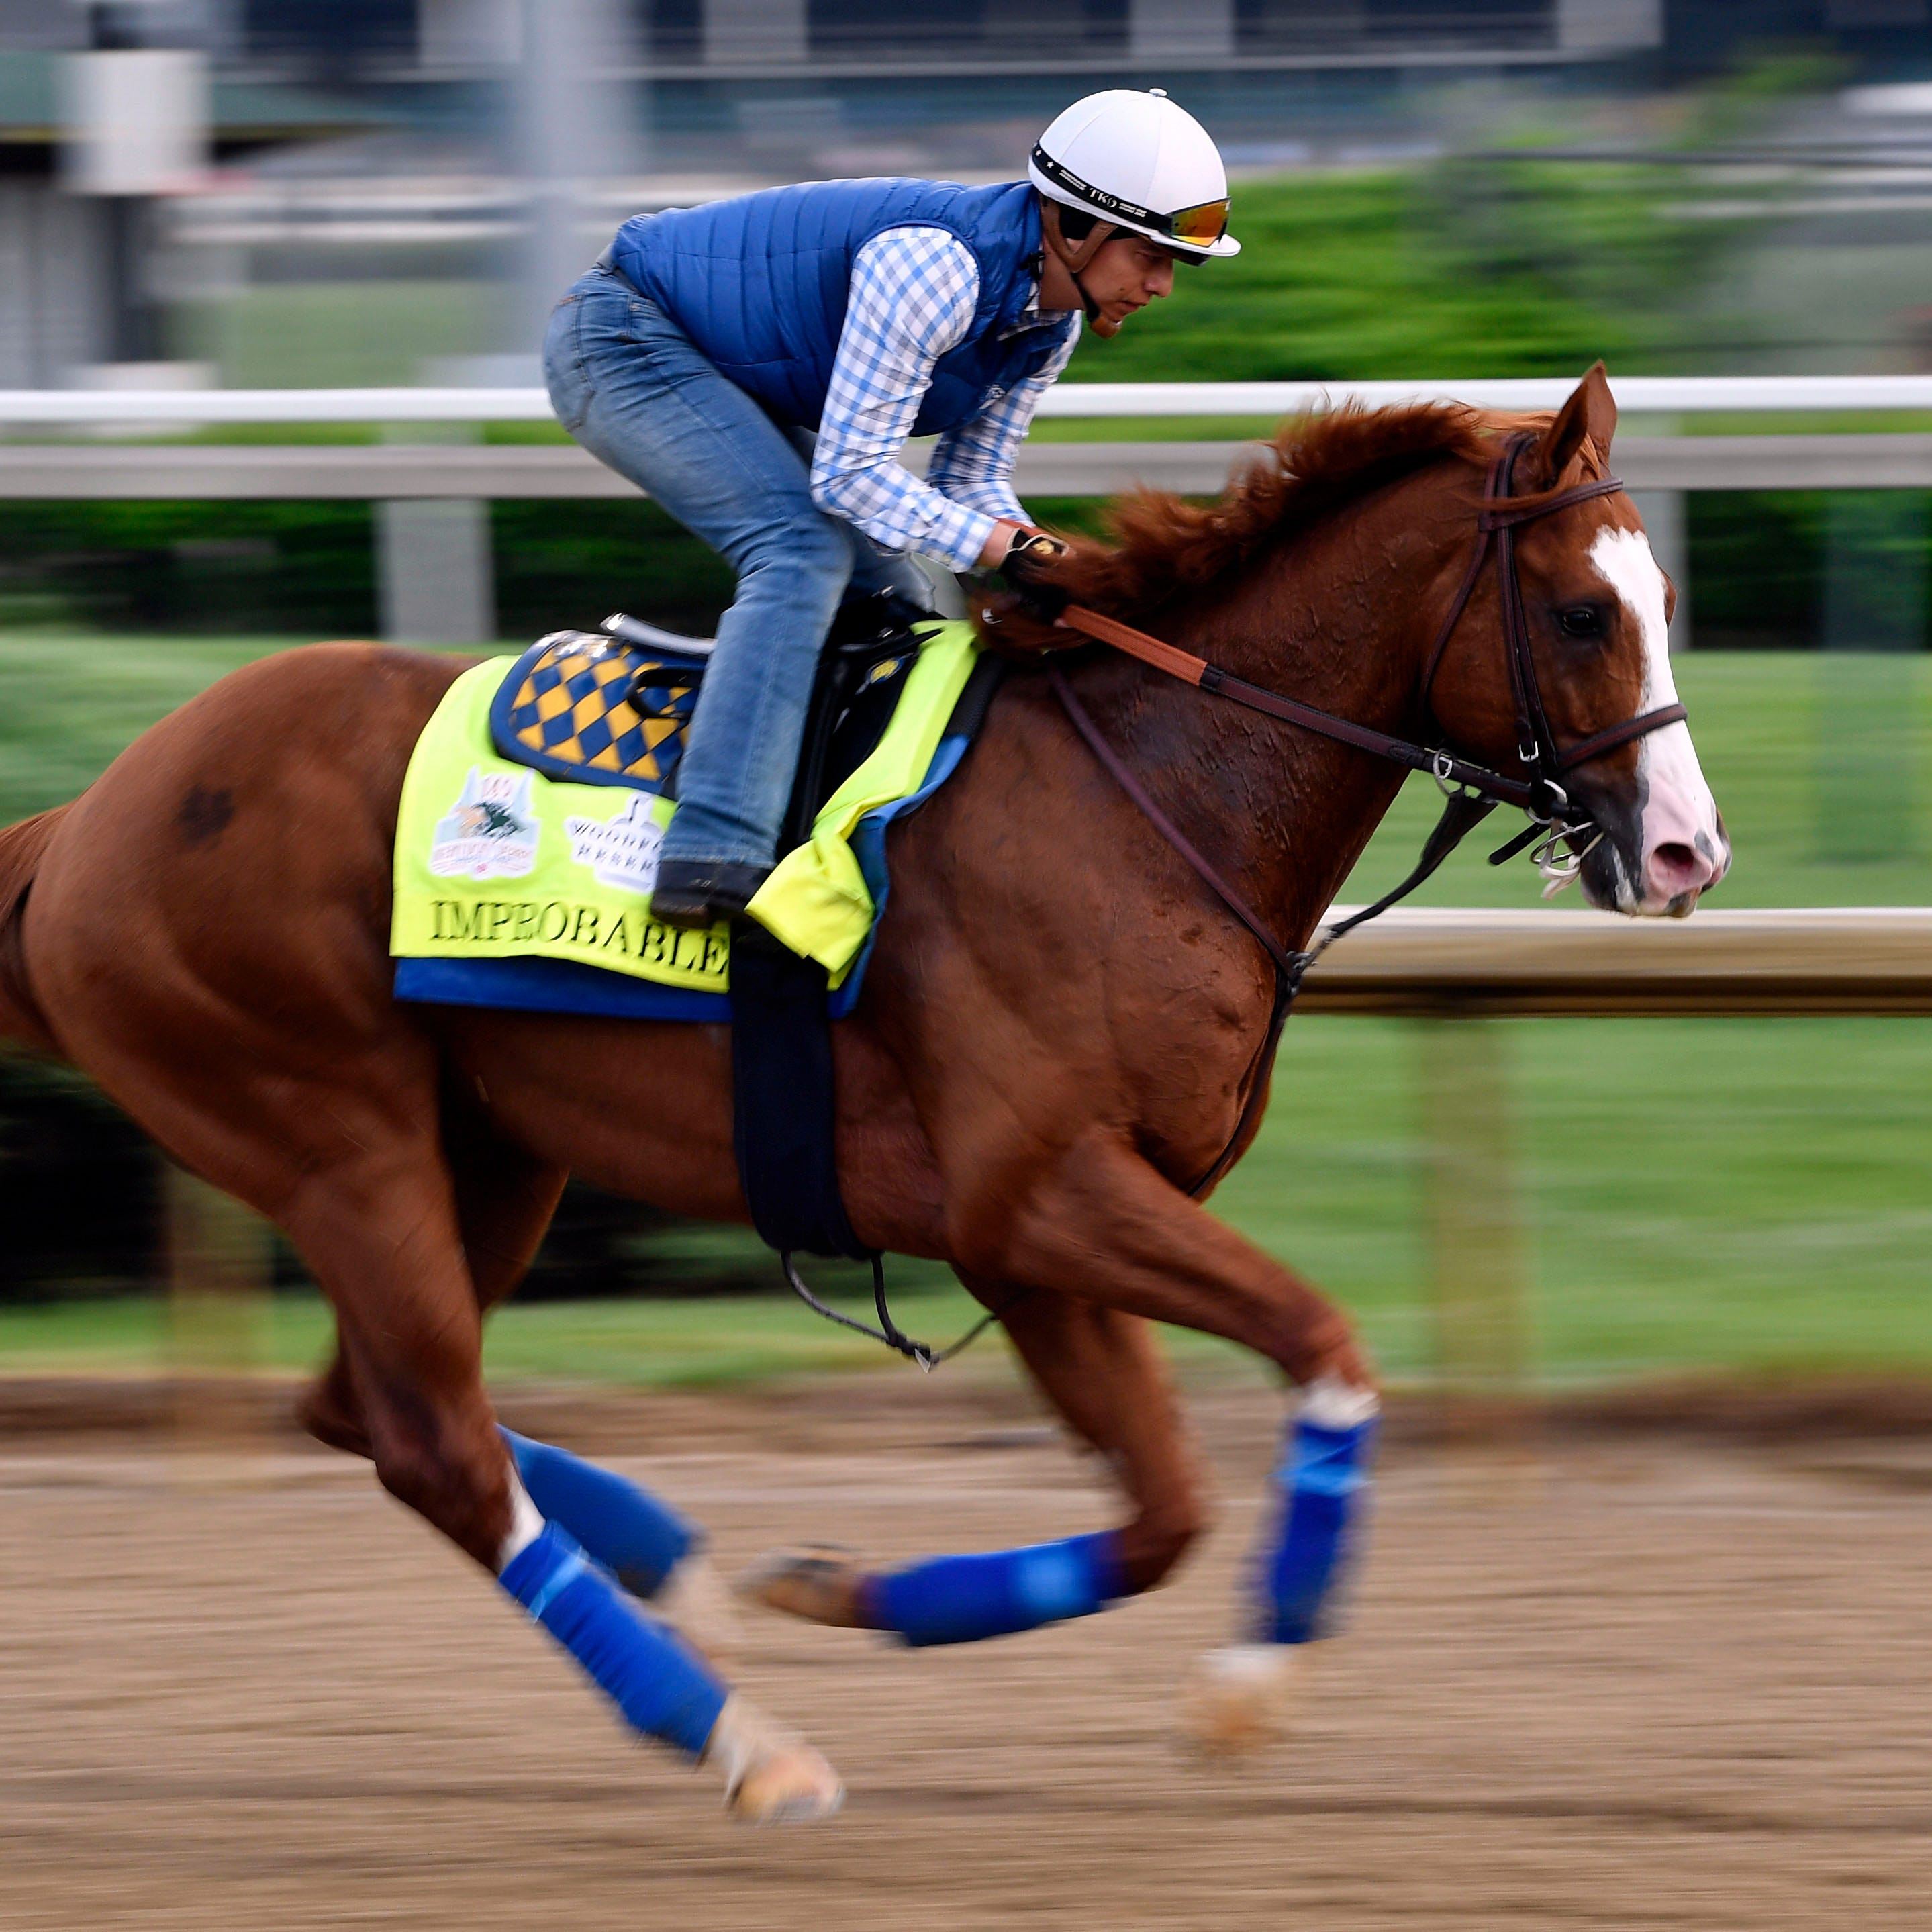 2019 Preakness: Post positions, morning line odds, with Improbable the favorite - UPDATED